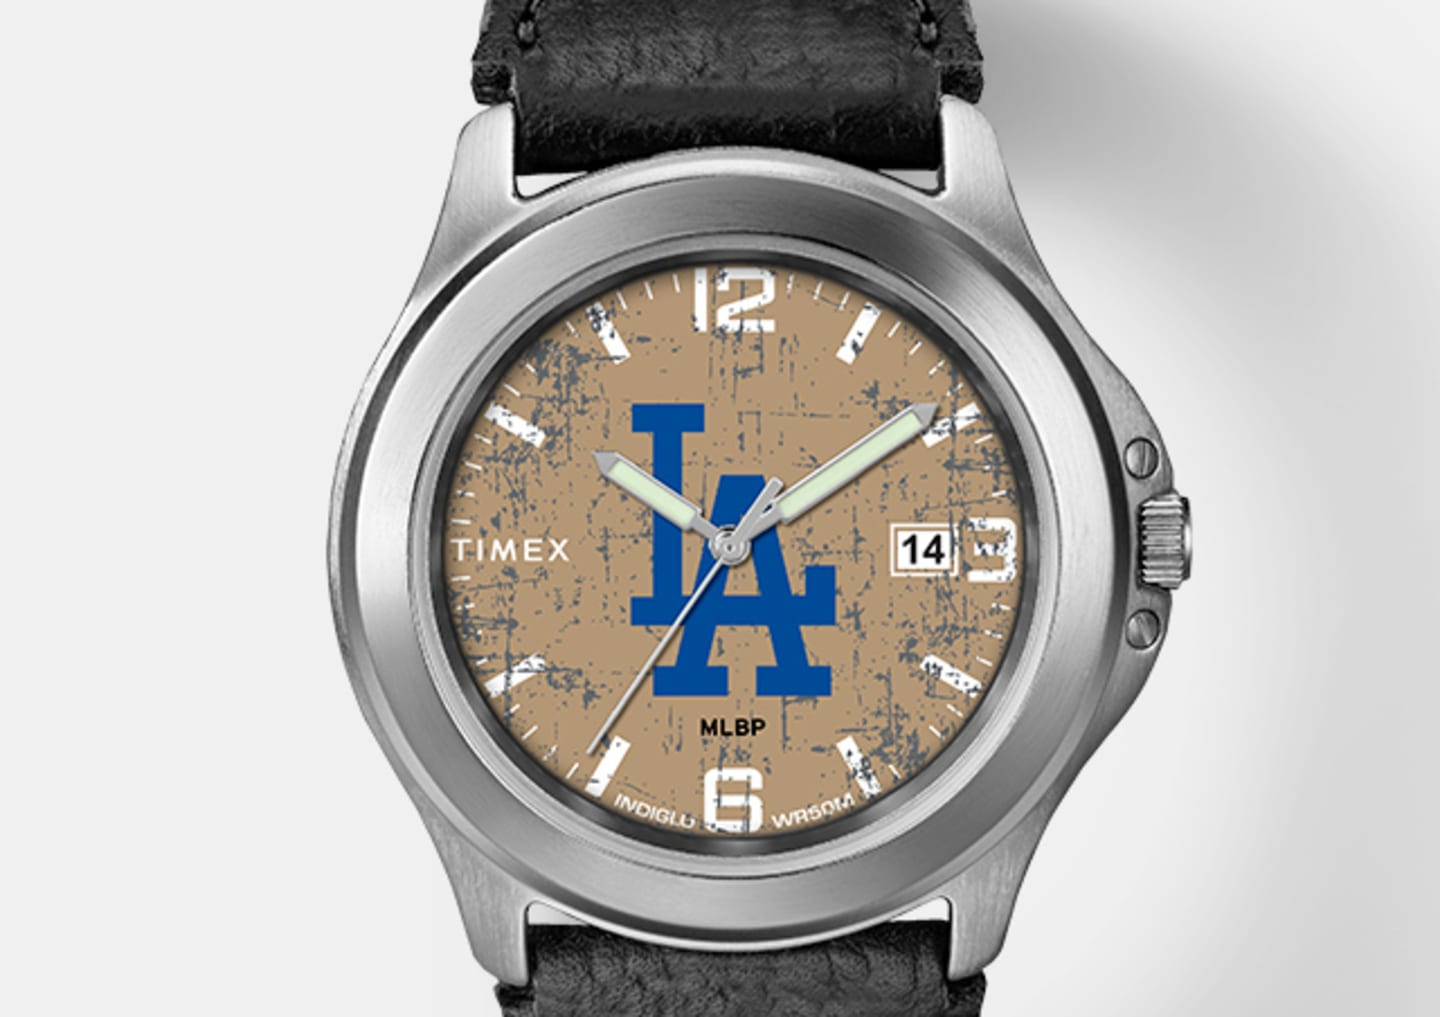 Silver Men's LA Watch With Black Straps And Blue Logo In Center